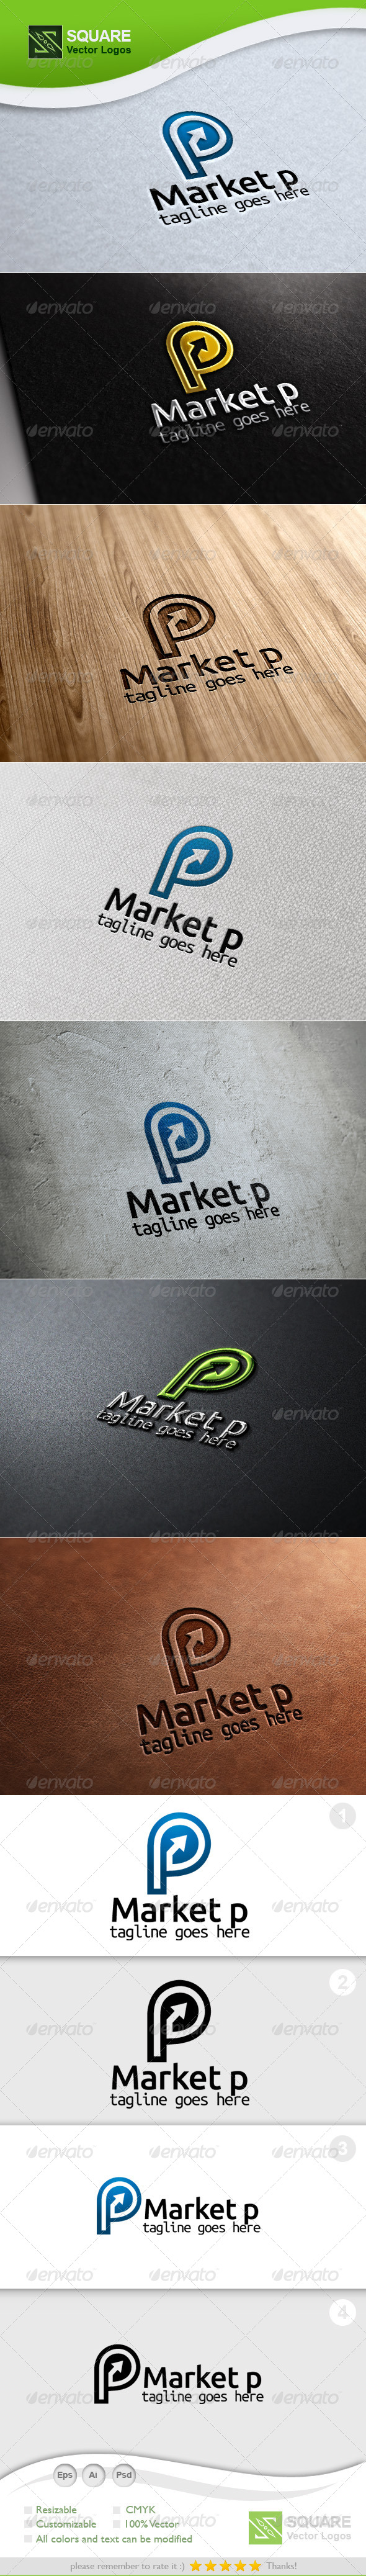 GraphicRiver P Market Vector Logo Template 5883934